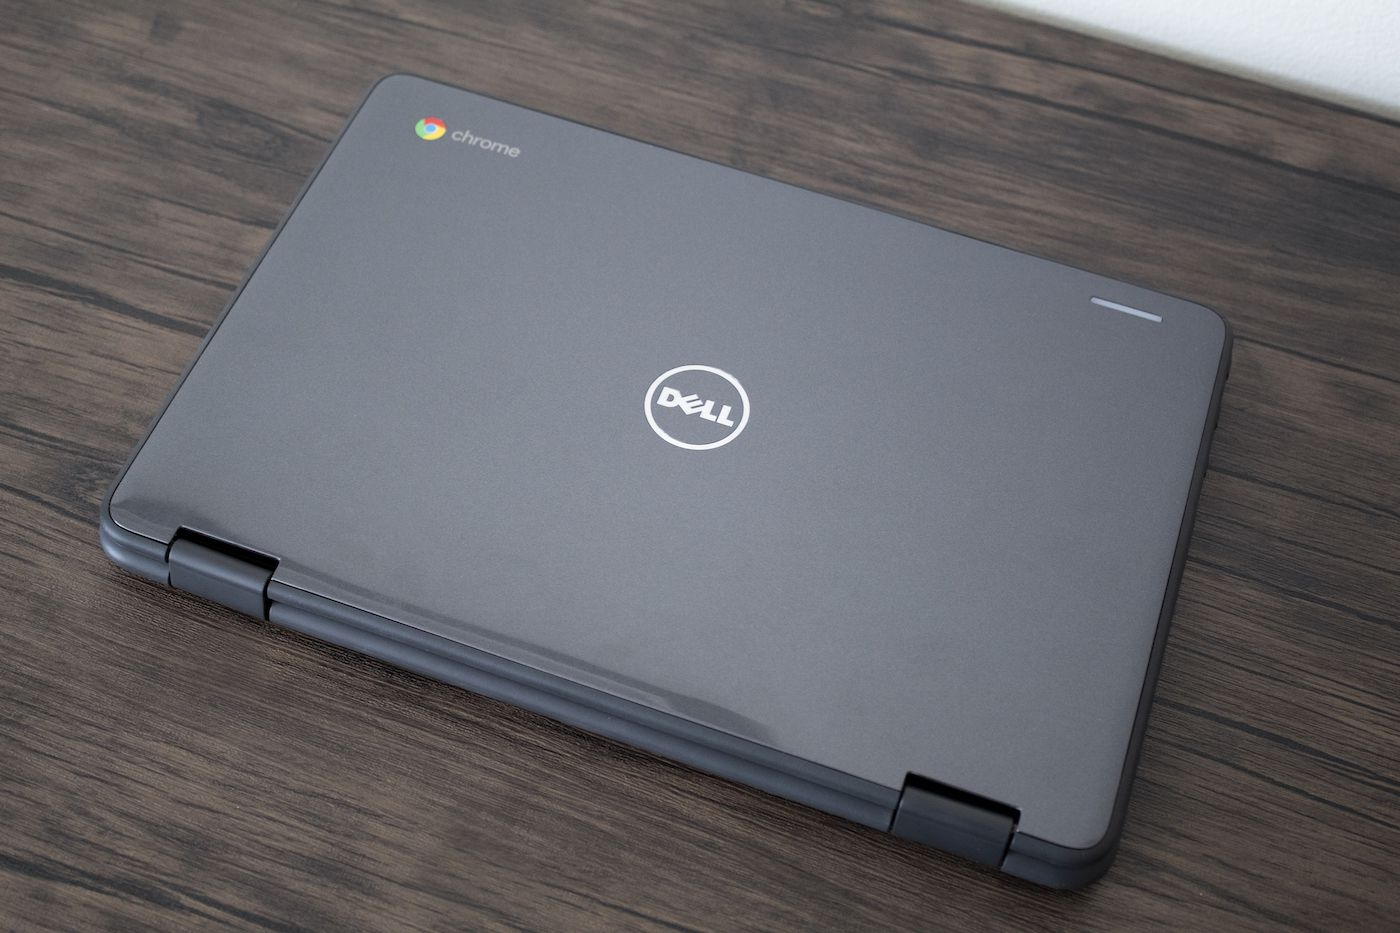 Dell Inspiron Chromebook 11 3181 Review